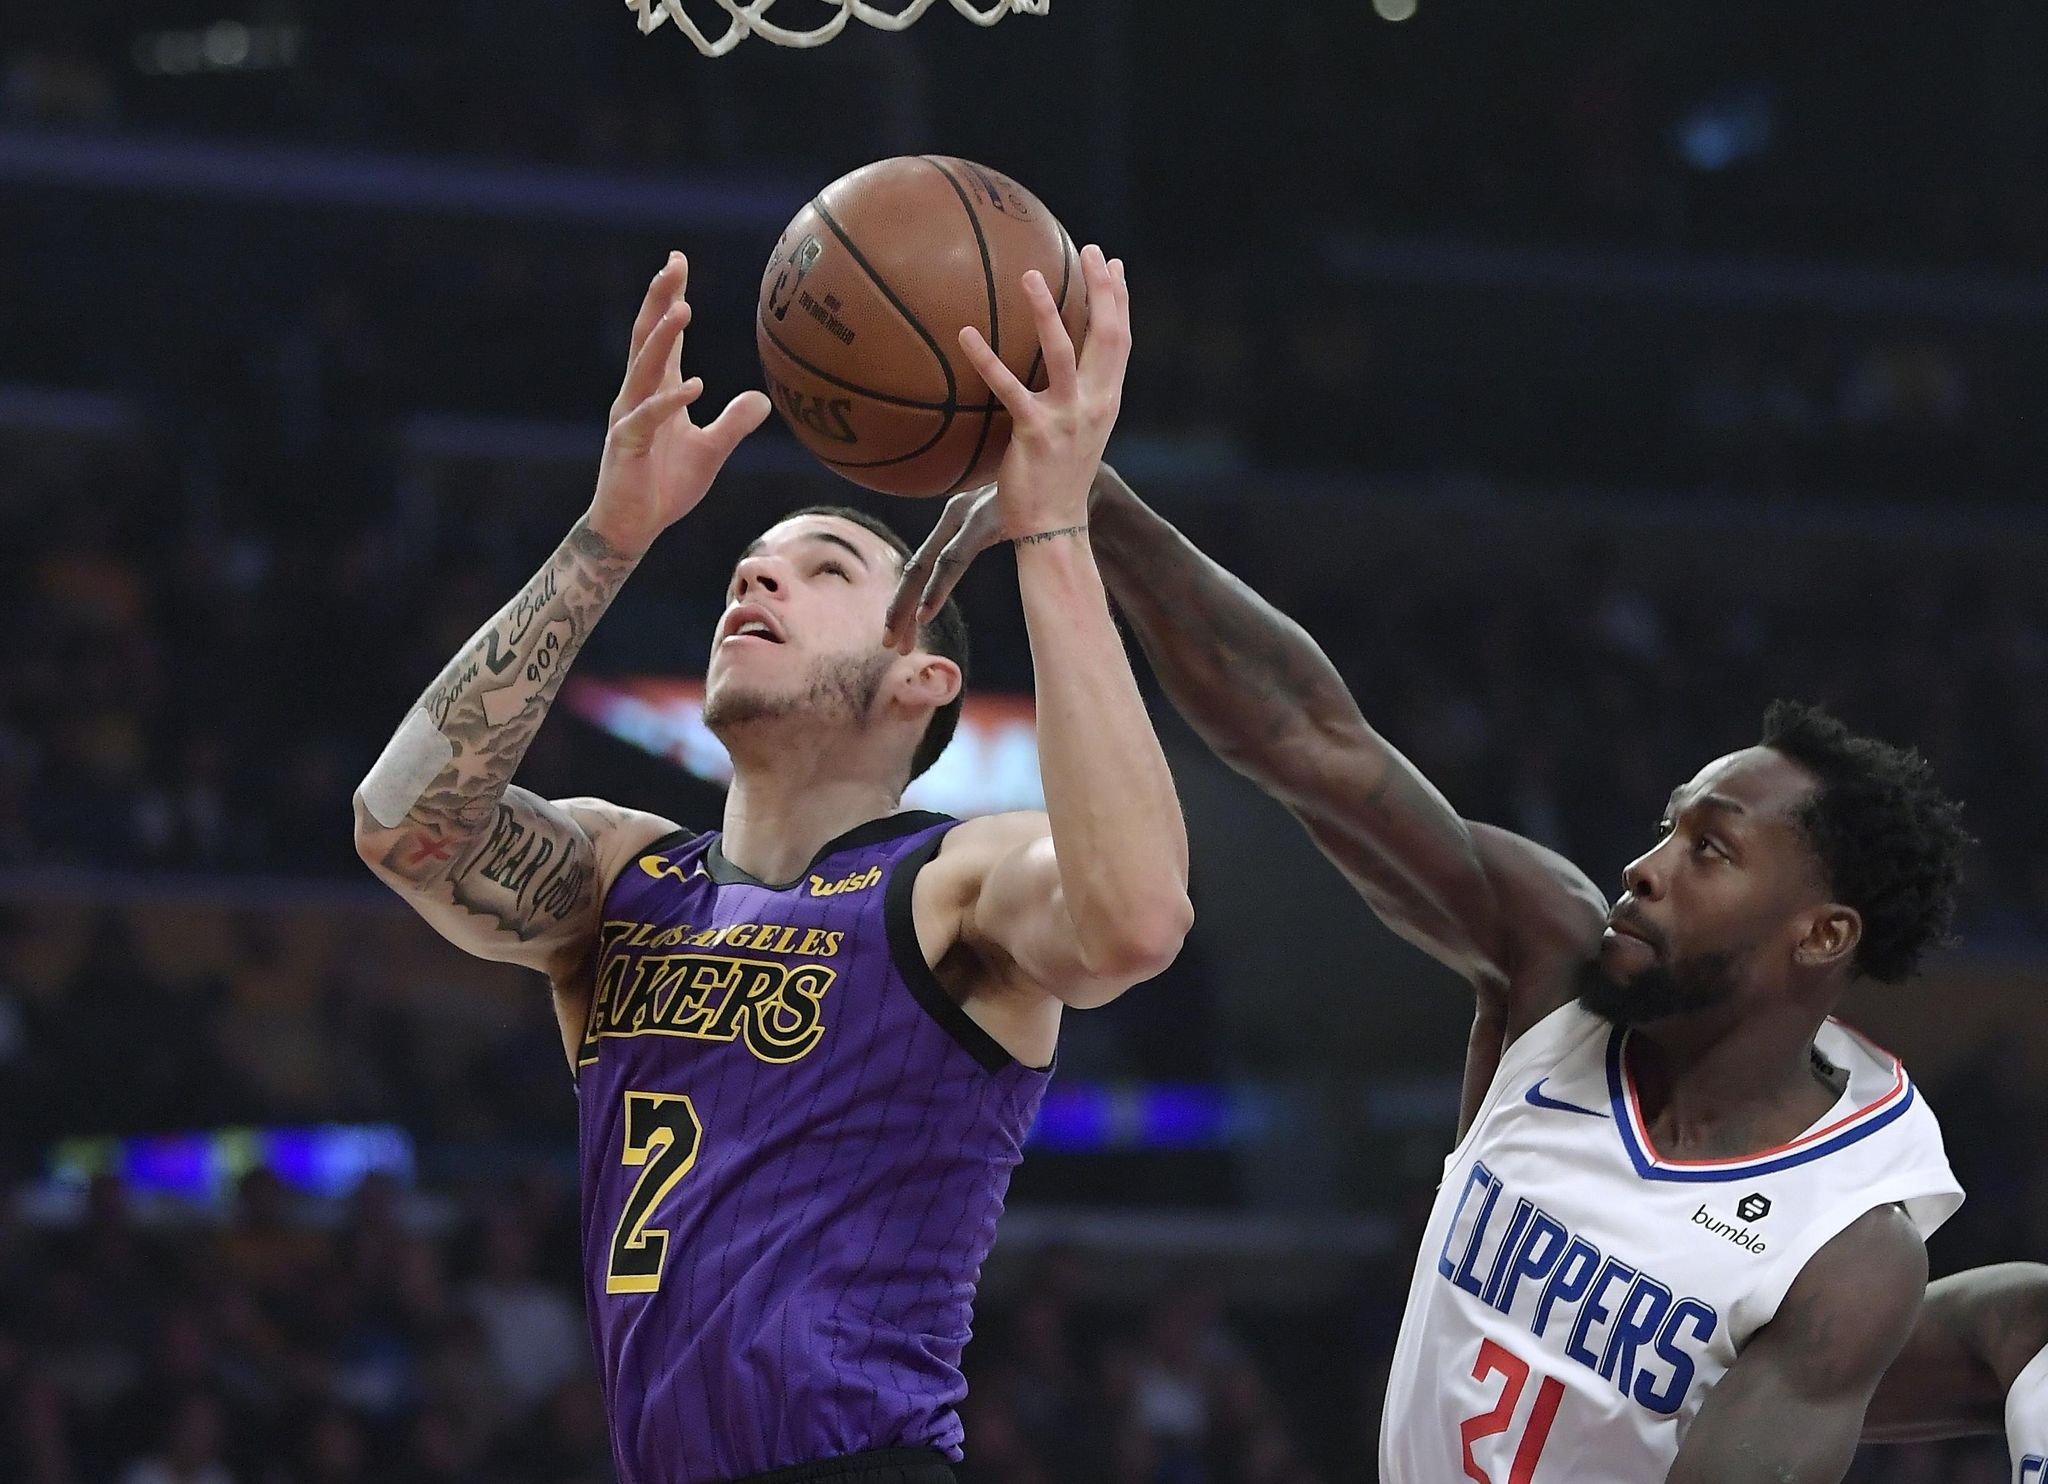 Lou S 36 Send Clips Past Lakers 118 107 In 1st Clash Of Year Lakers Vs Clippers Nba News Lakers Vs